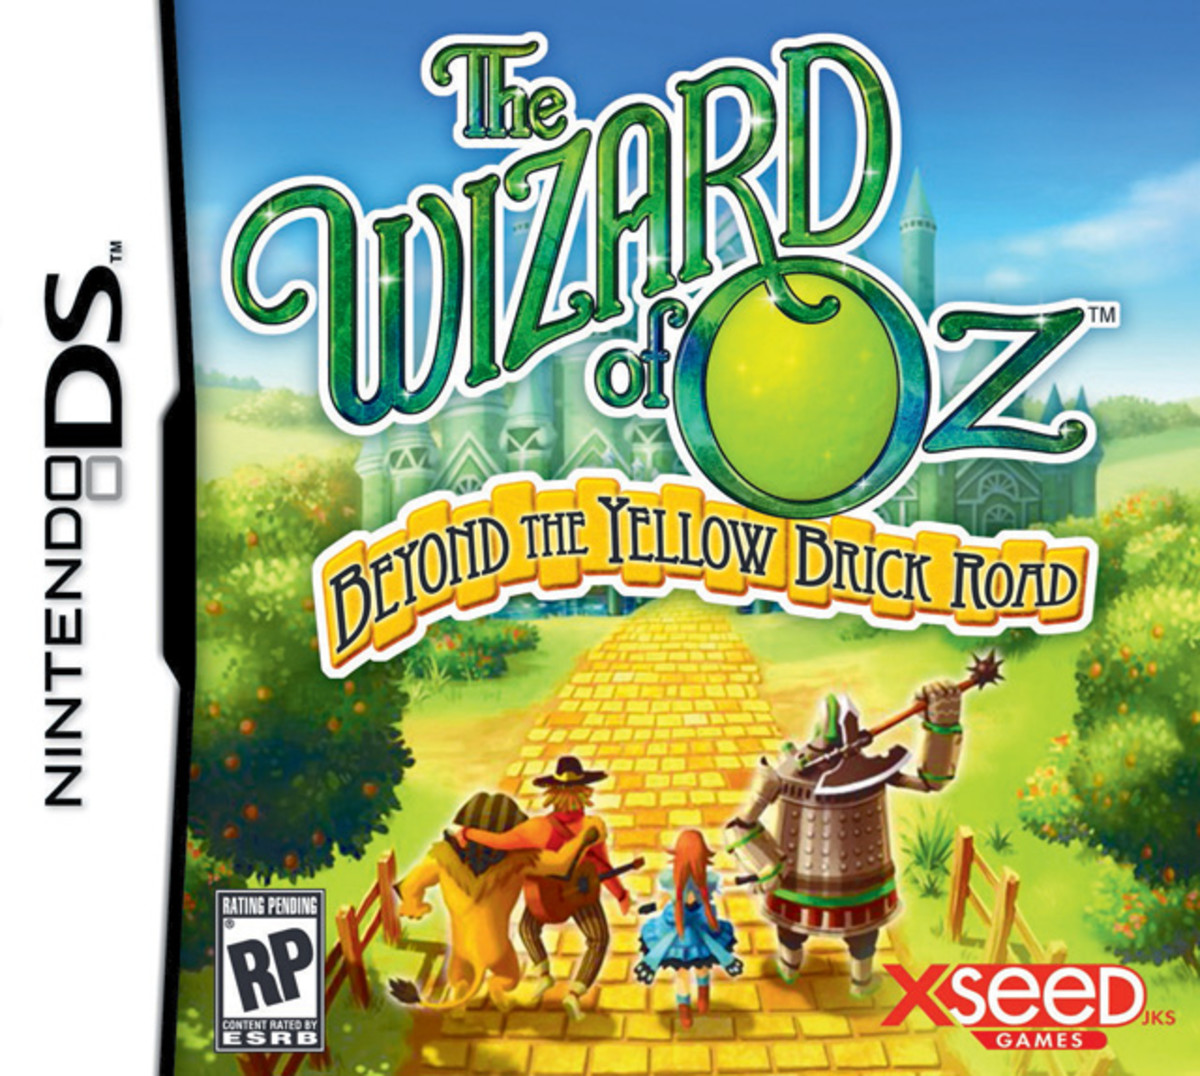 The Wizard of Oz: Beyond the Yellow Brick Road – Nintendo DS Game Review